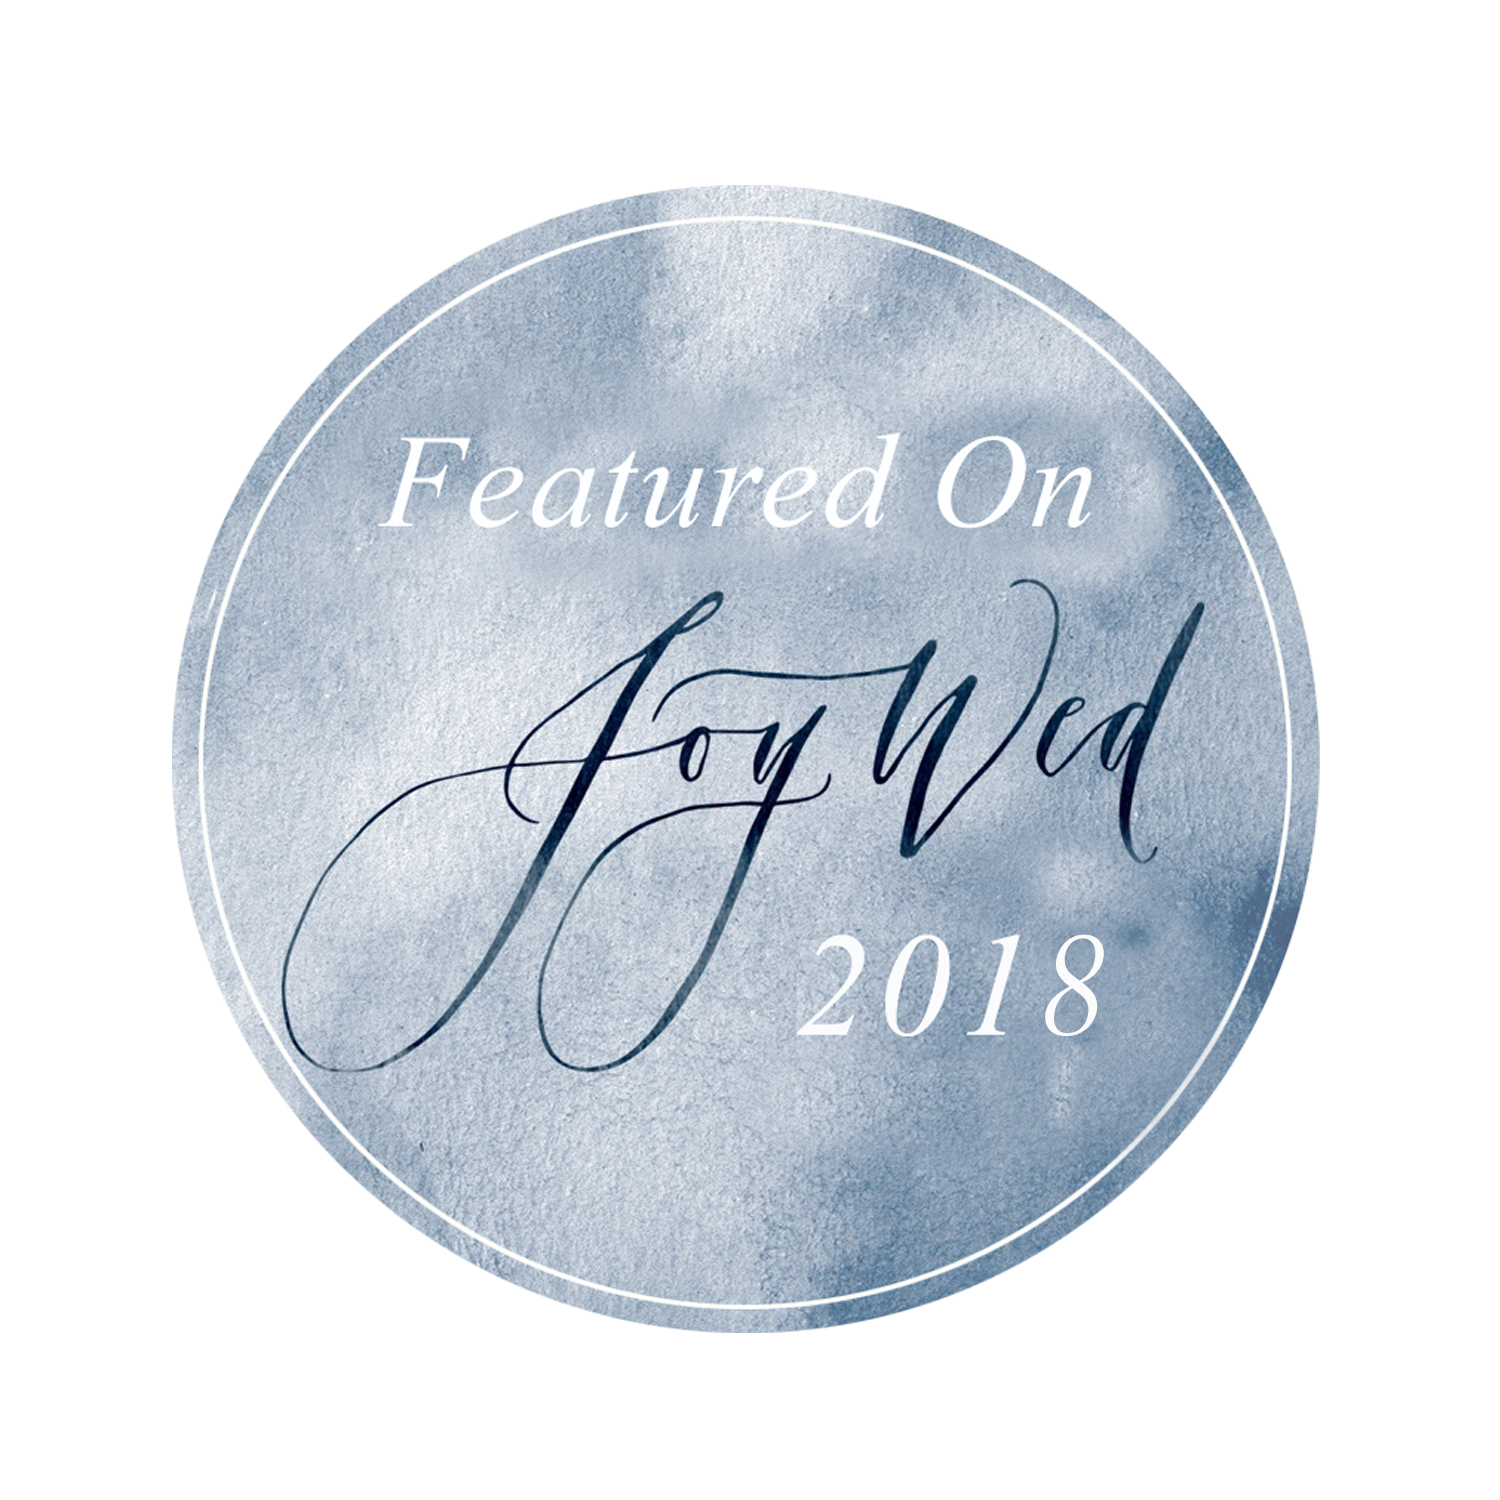 Joy Wed Badge- Sheri McMahon Photography Featured On 2018.png